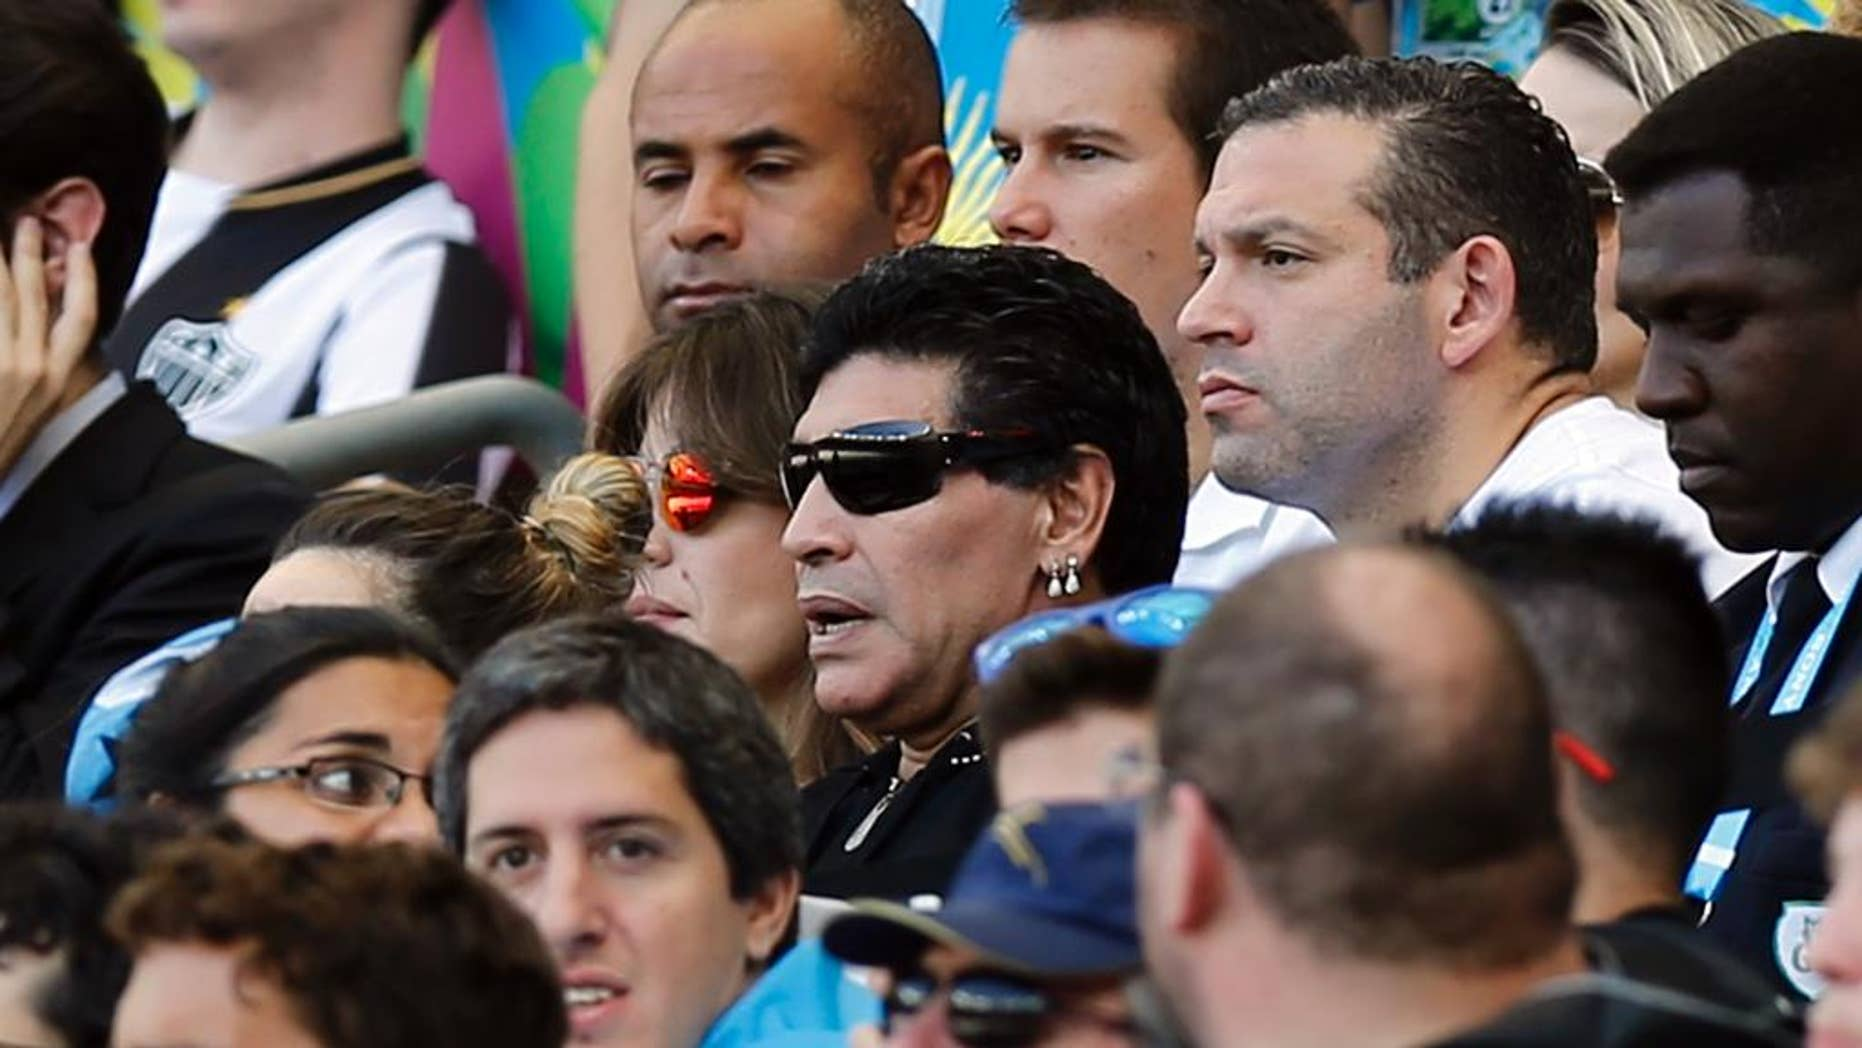 Argentine soccer legend Diego Maradona watches the group F World Cup soccer match between Argentina and Iran at the Mineirao Stadium in Belo Horizonte, Brazil, Saturday, June 21, 2014. (AP Photo/Victor R. Caivano)